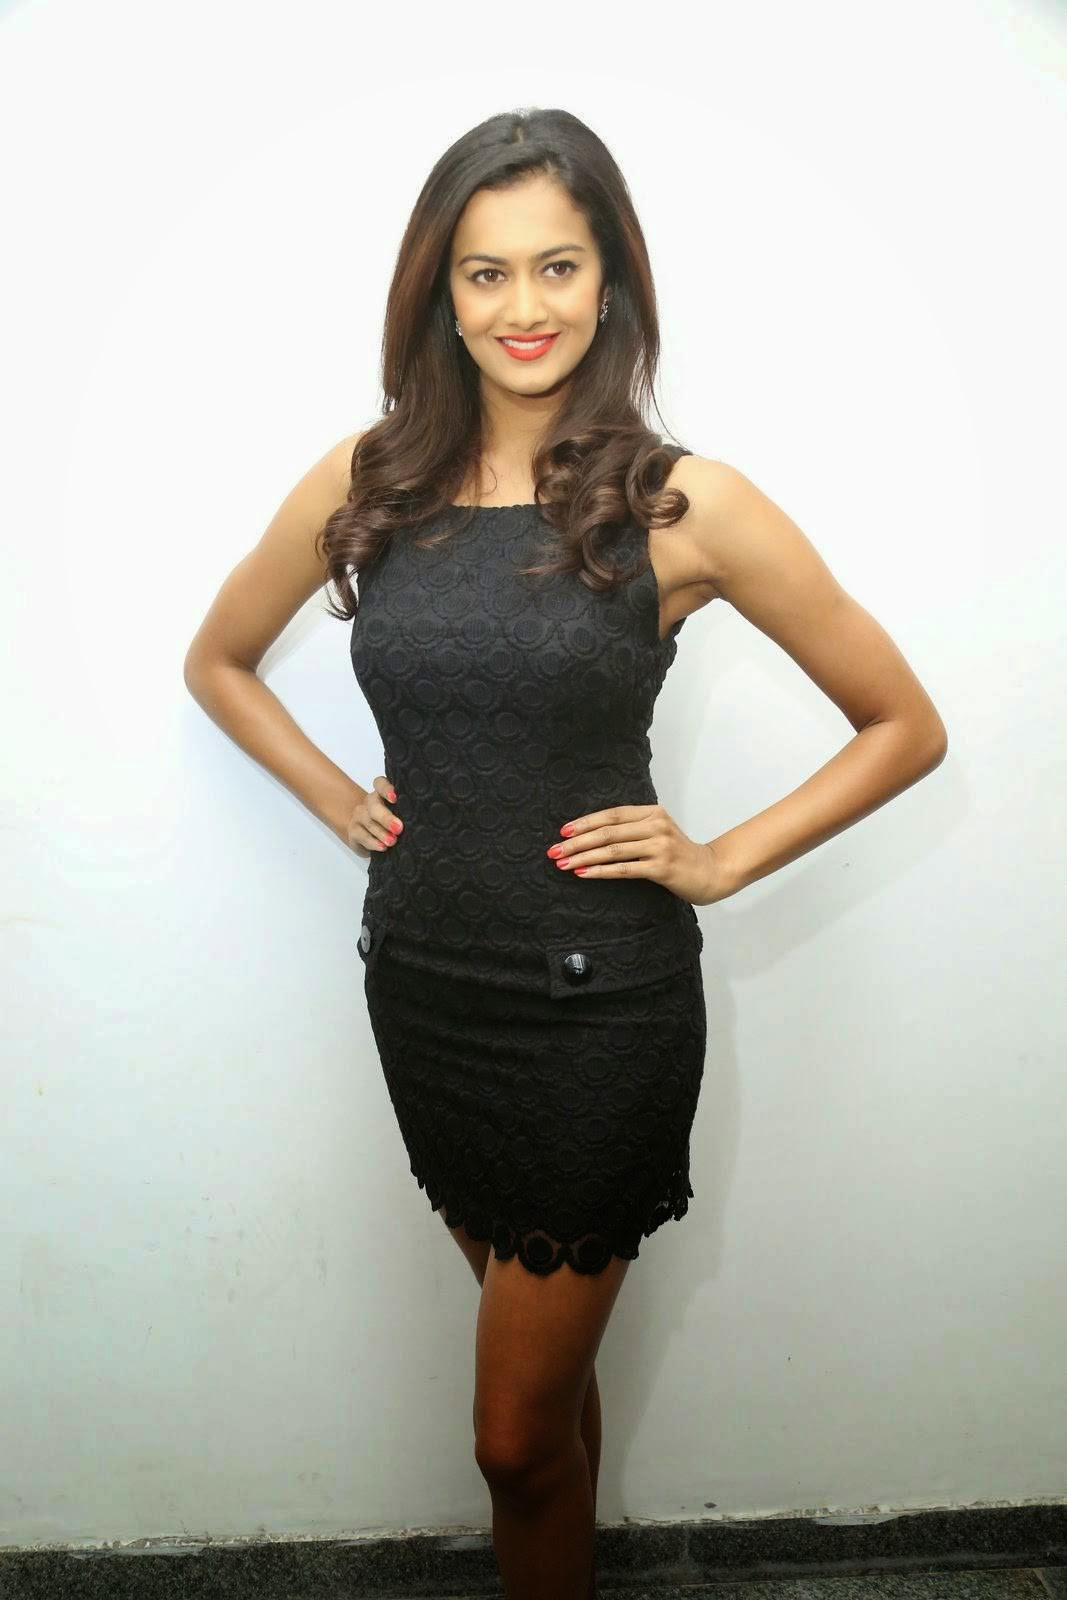 High Quality Shubra Aiyappa Pics, Shubra Aiyappa Sexy Hot Figure images in Black Dress